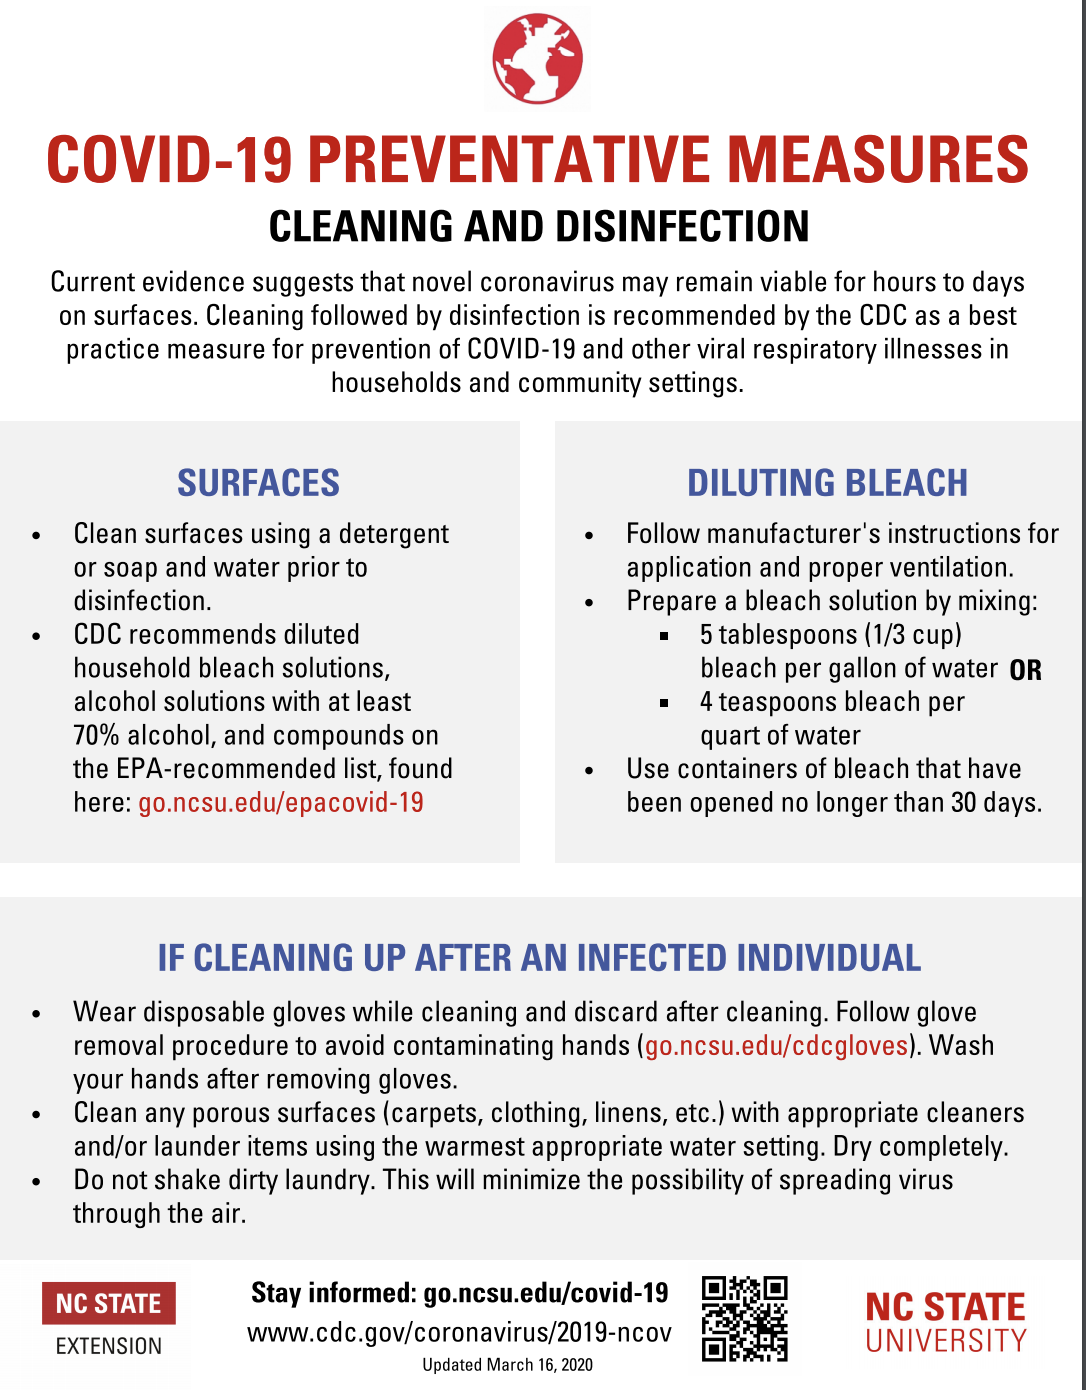 Cleaning and Disinfecting flyer image